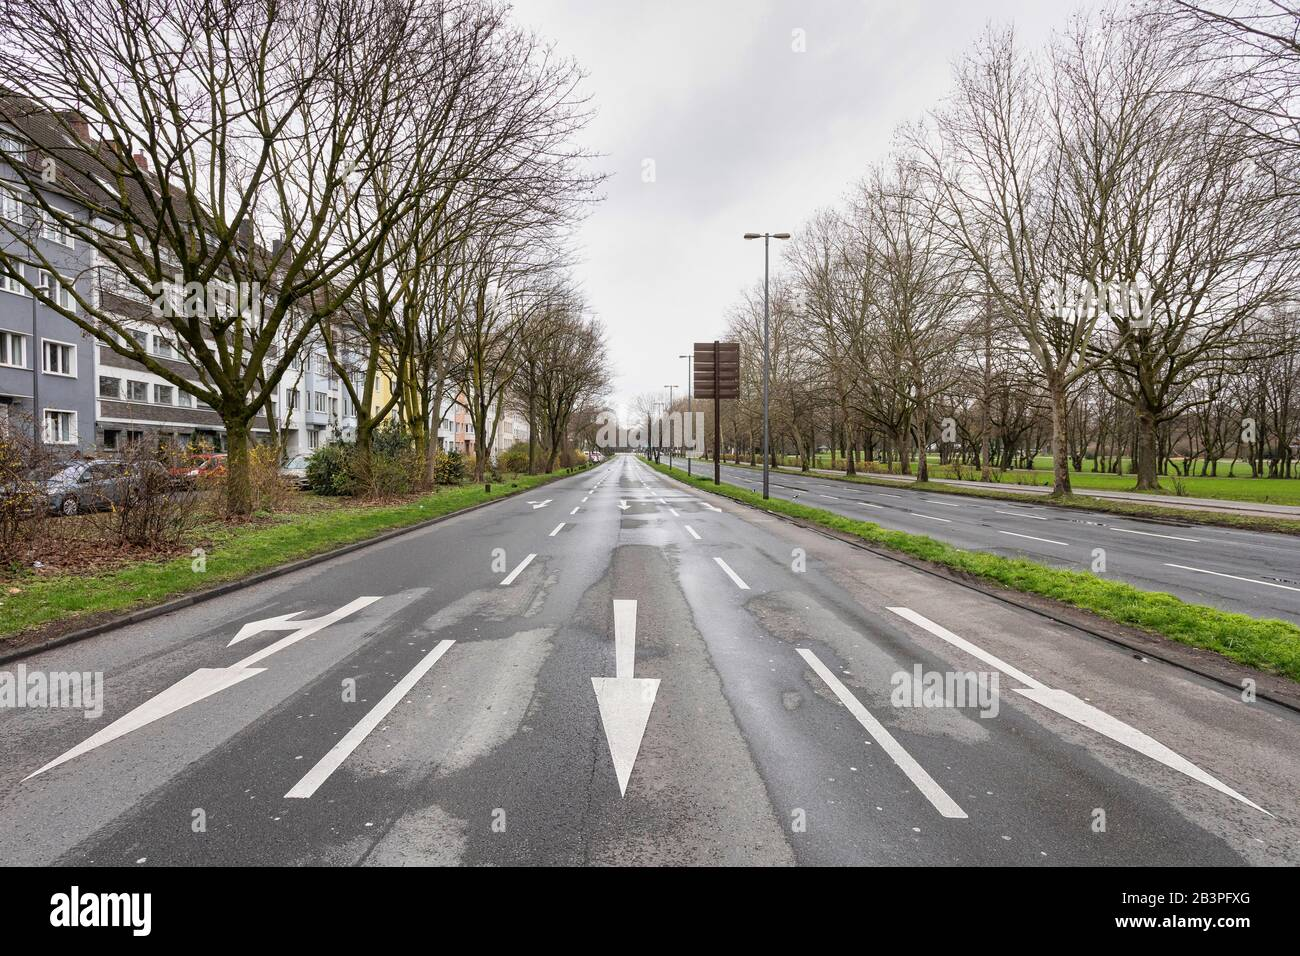 After a water pipe burst and the subsidence of part of the road surface, the main artery of the Cologne traffic is closed for several days. Stock Photo